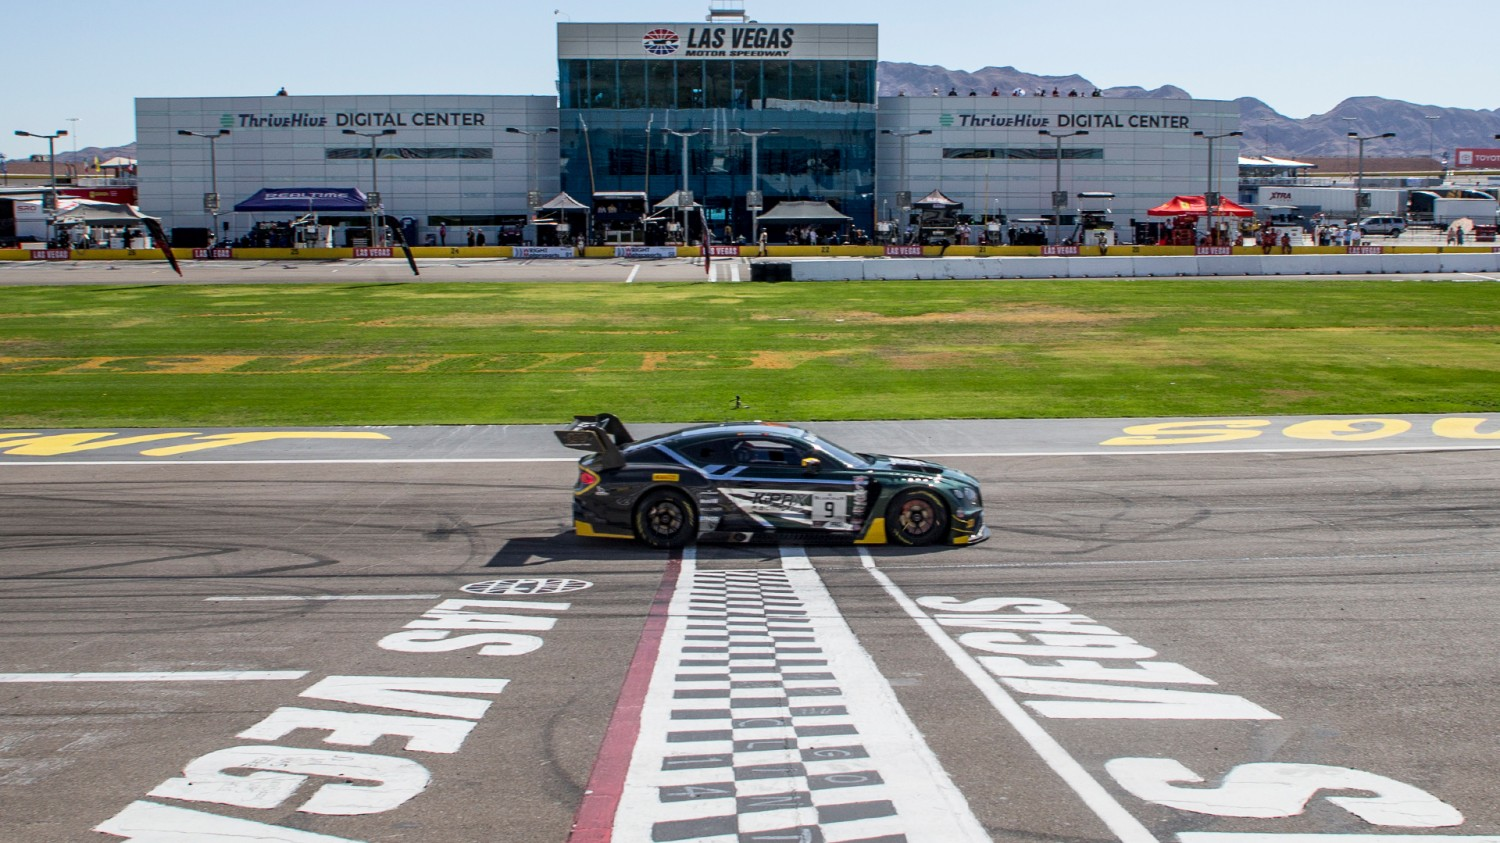 Soucek/Parente Lead Bentley to Blancpain GT World Challenge America Win at Las Vegas Motor Speedway